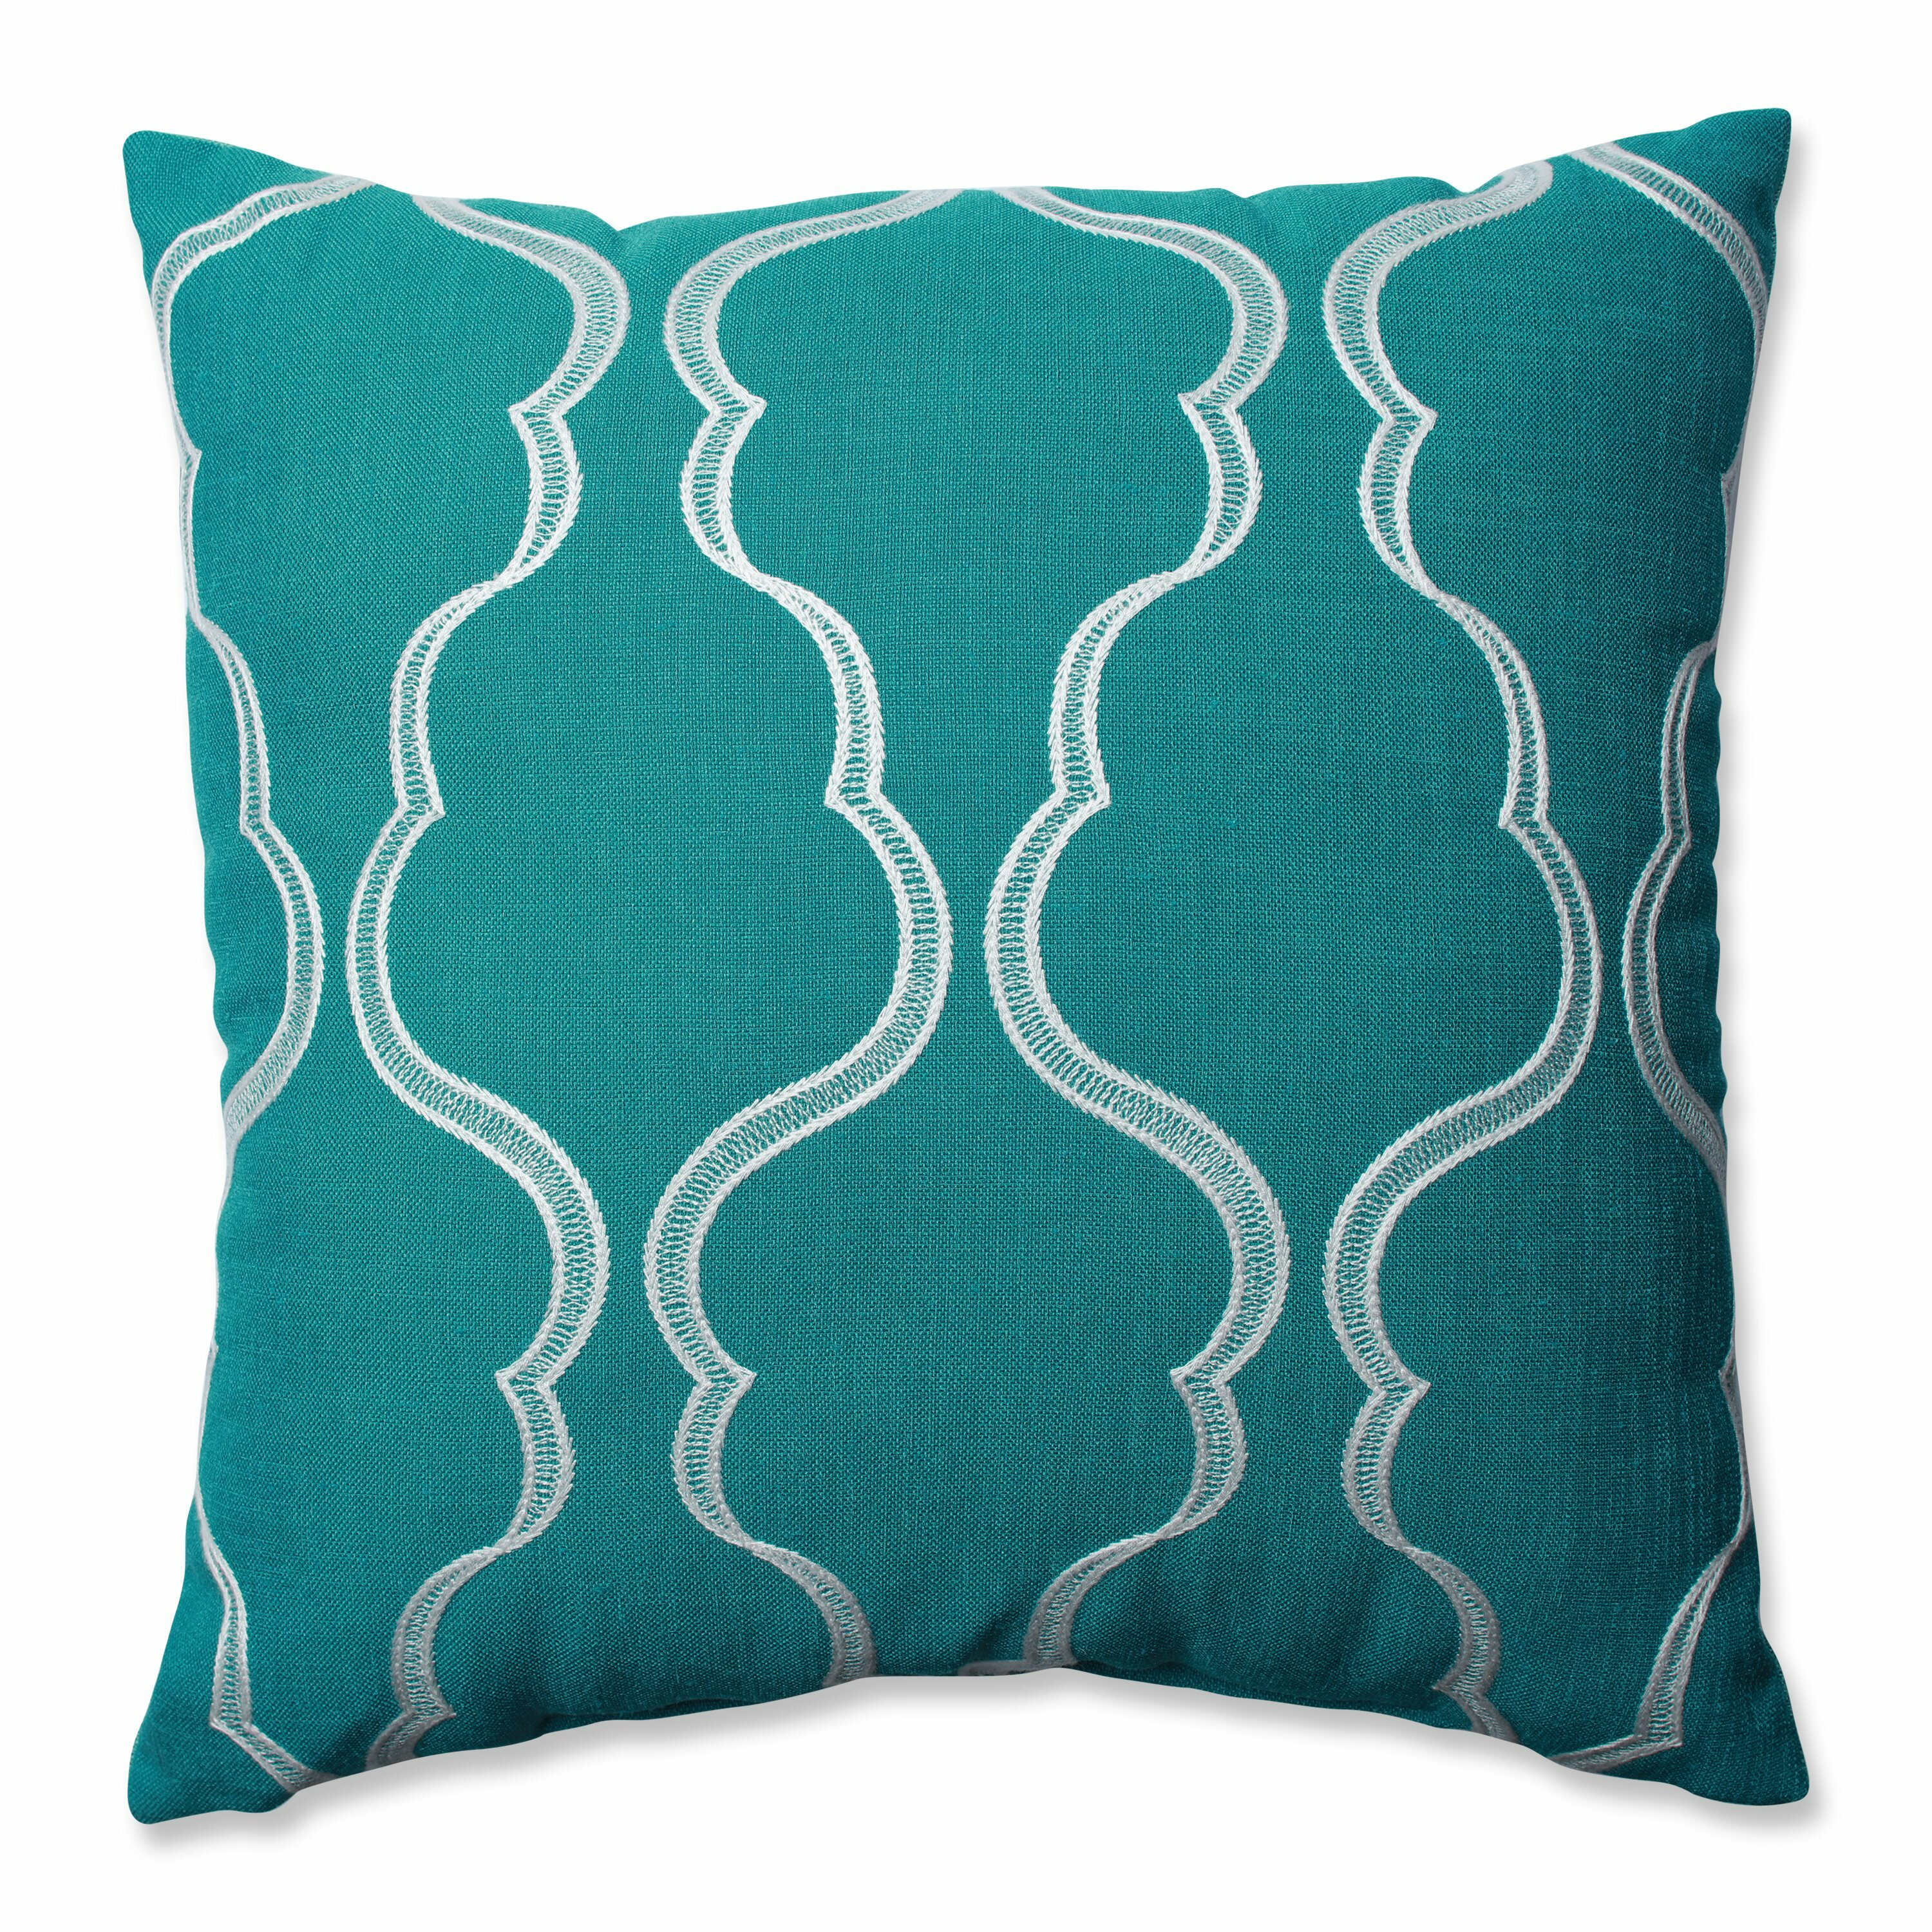 Wayfair Teal Throw Pillows : Pillow Perfect Cassie Throw Pillow & Reviews Wayfair